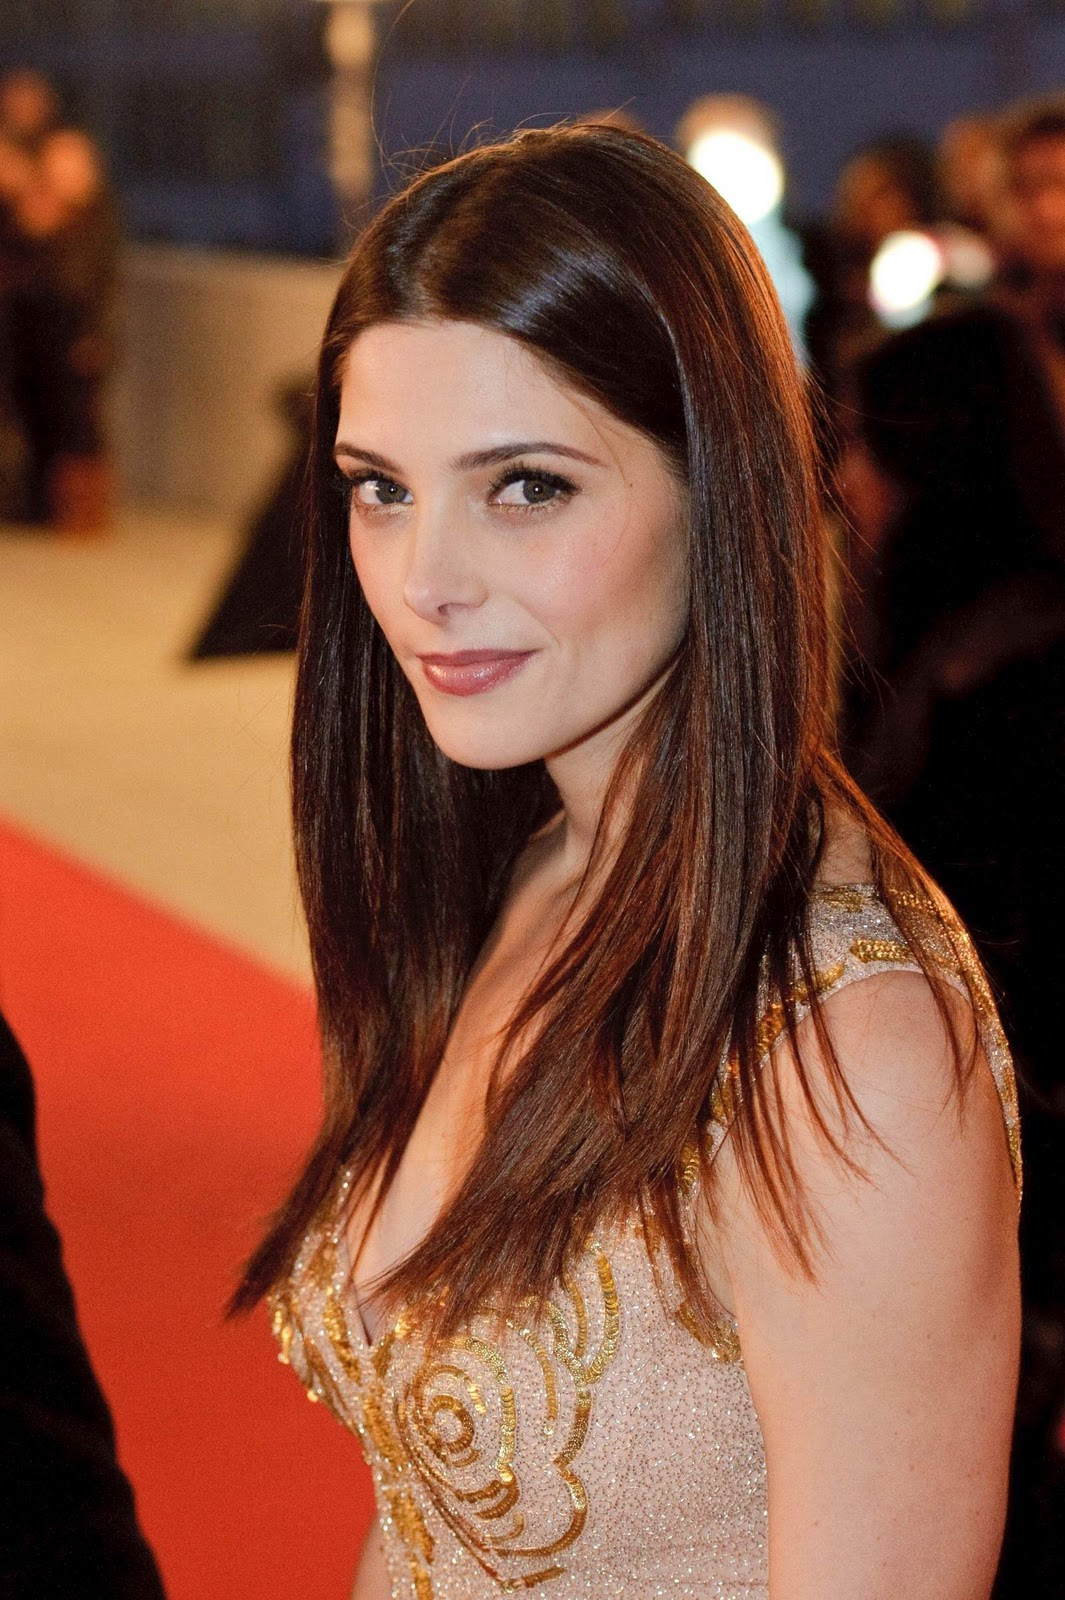 http://4.bp.blogspot.com/-SRP29Aom9E0/TwdGdWD26BI/AAAAAAAAEZI/0D3liMdFnOM/s1600/Ashley-Greene-images-2.JPG